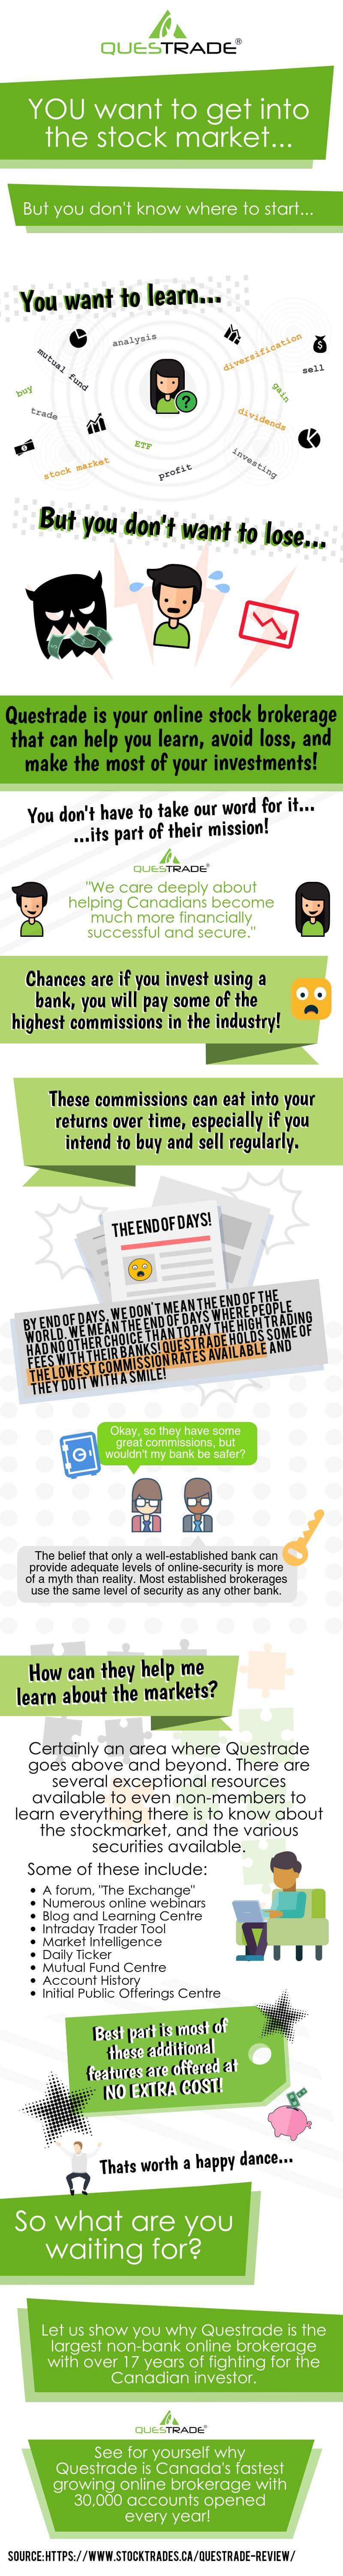 Questrade review infographic